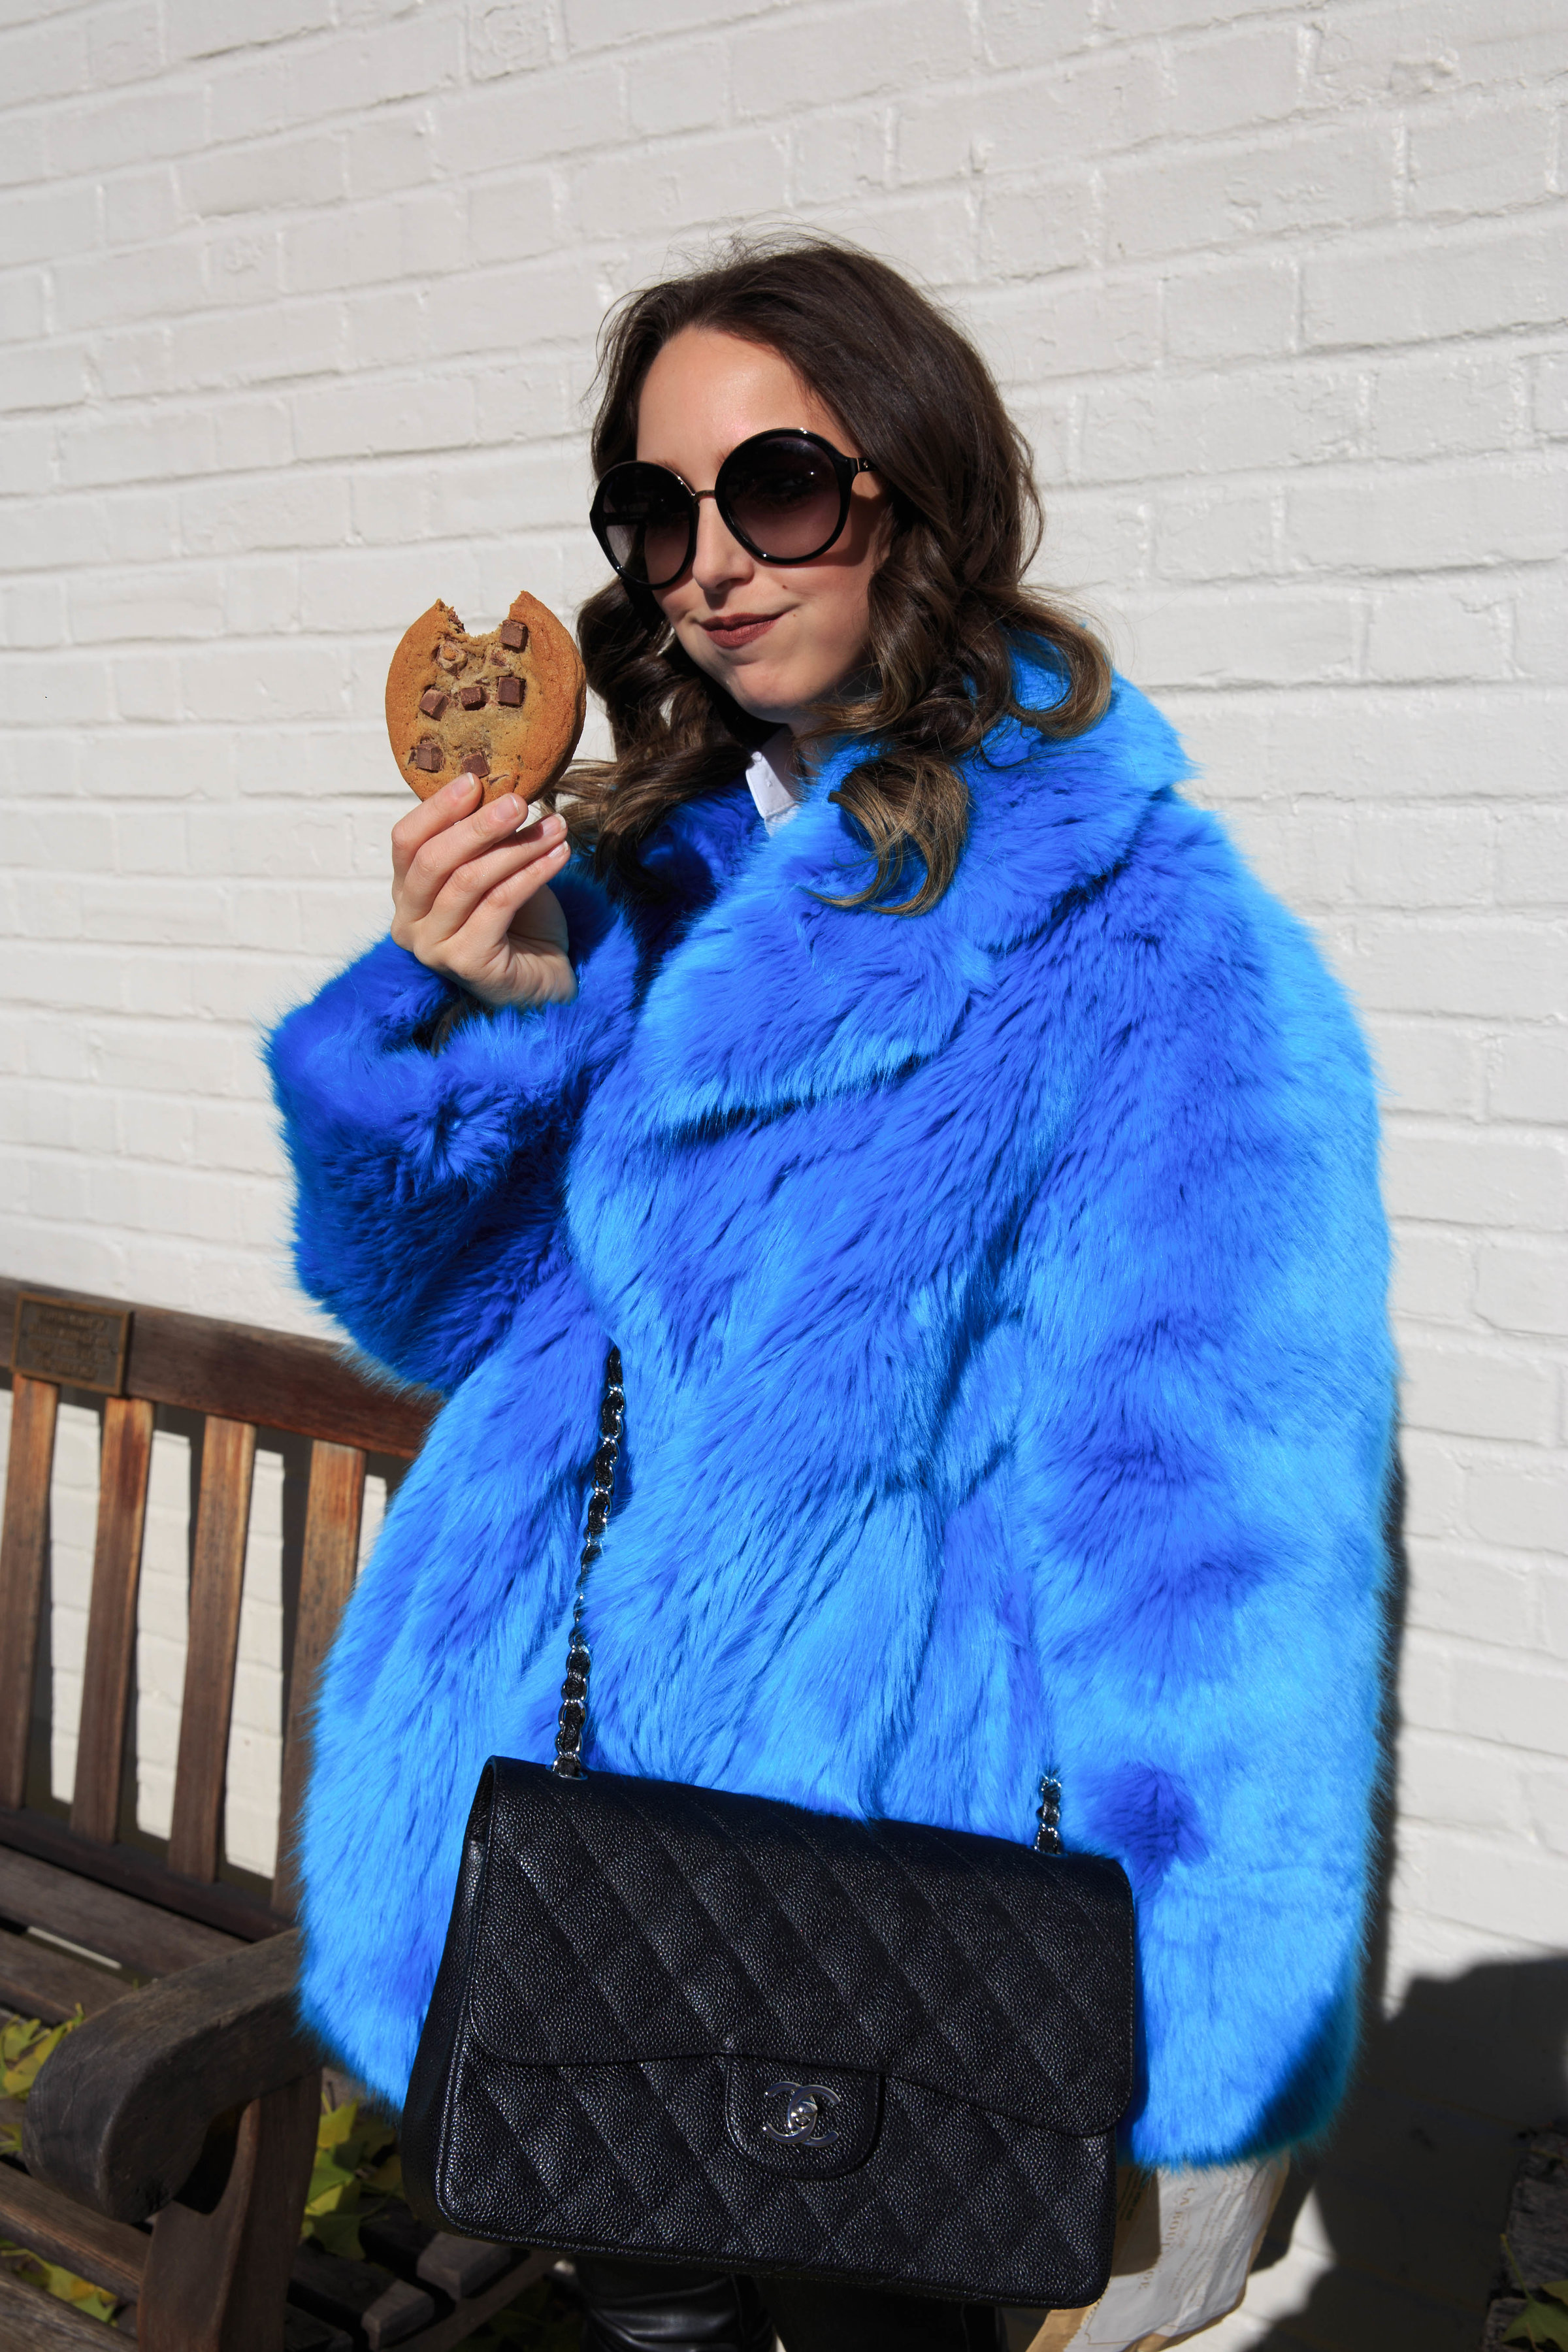 faux fur coat-street style-fashion-new york-2017-winter-outfit-dvf-leather pants-zara-chanel